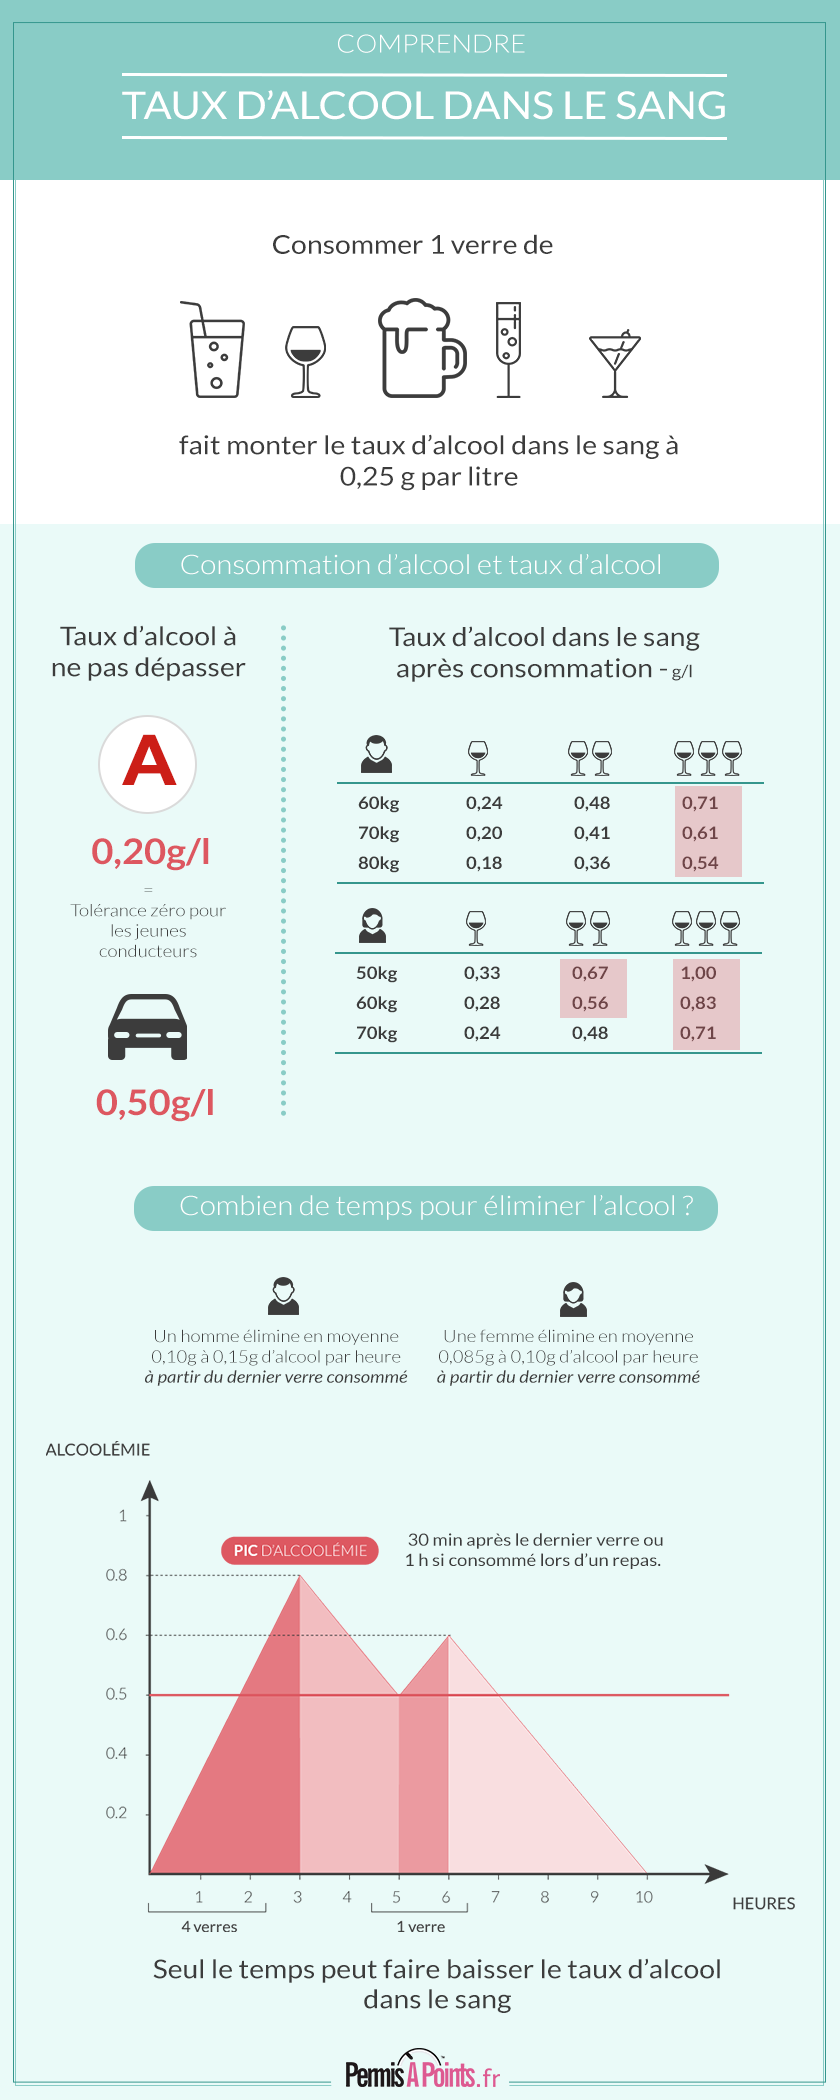 alcool au volant 6 points perdus risques sanctions permis a points